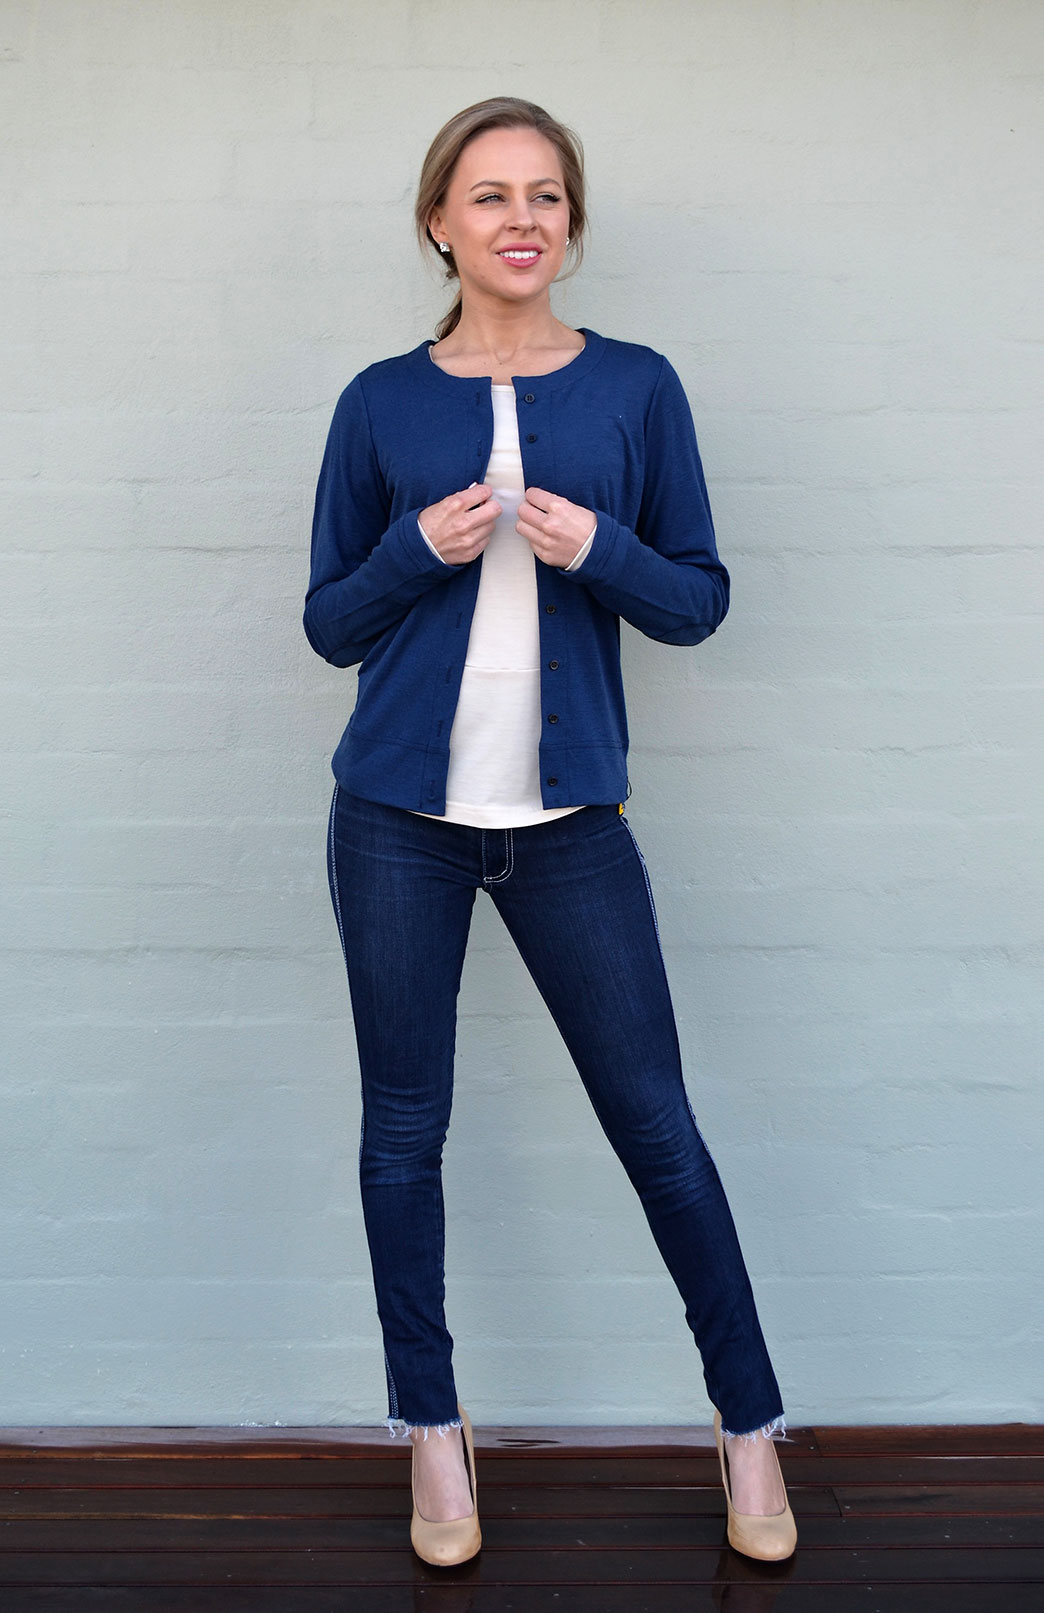 Round Neck Cardigan - Women's Dark Blue Indigo Round Neck Cardigan with Buttons - Smitten Merino Tasmania Australia